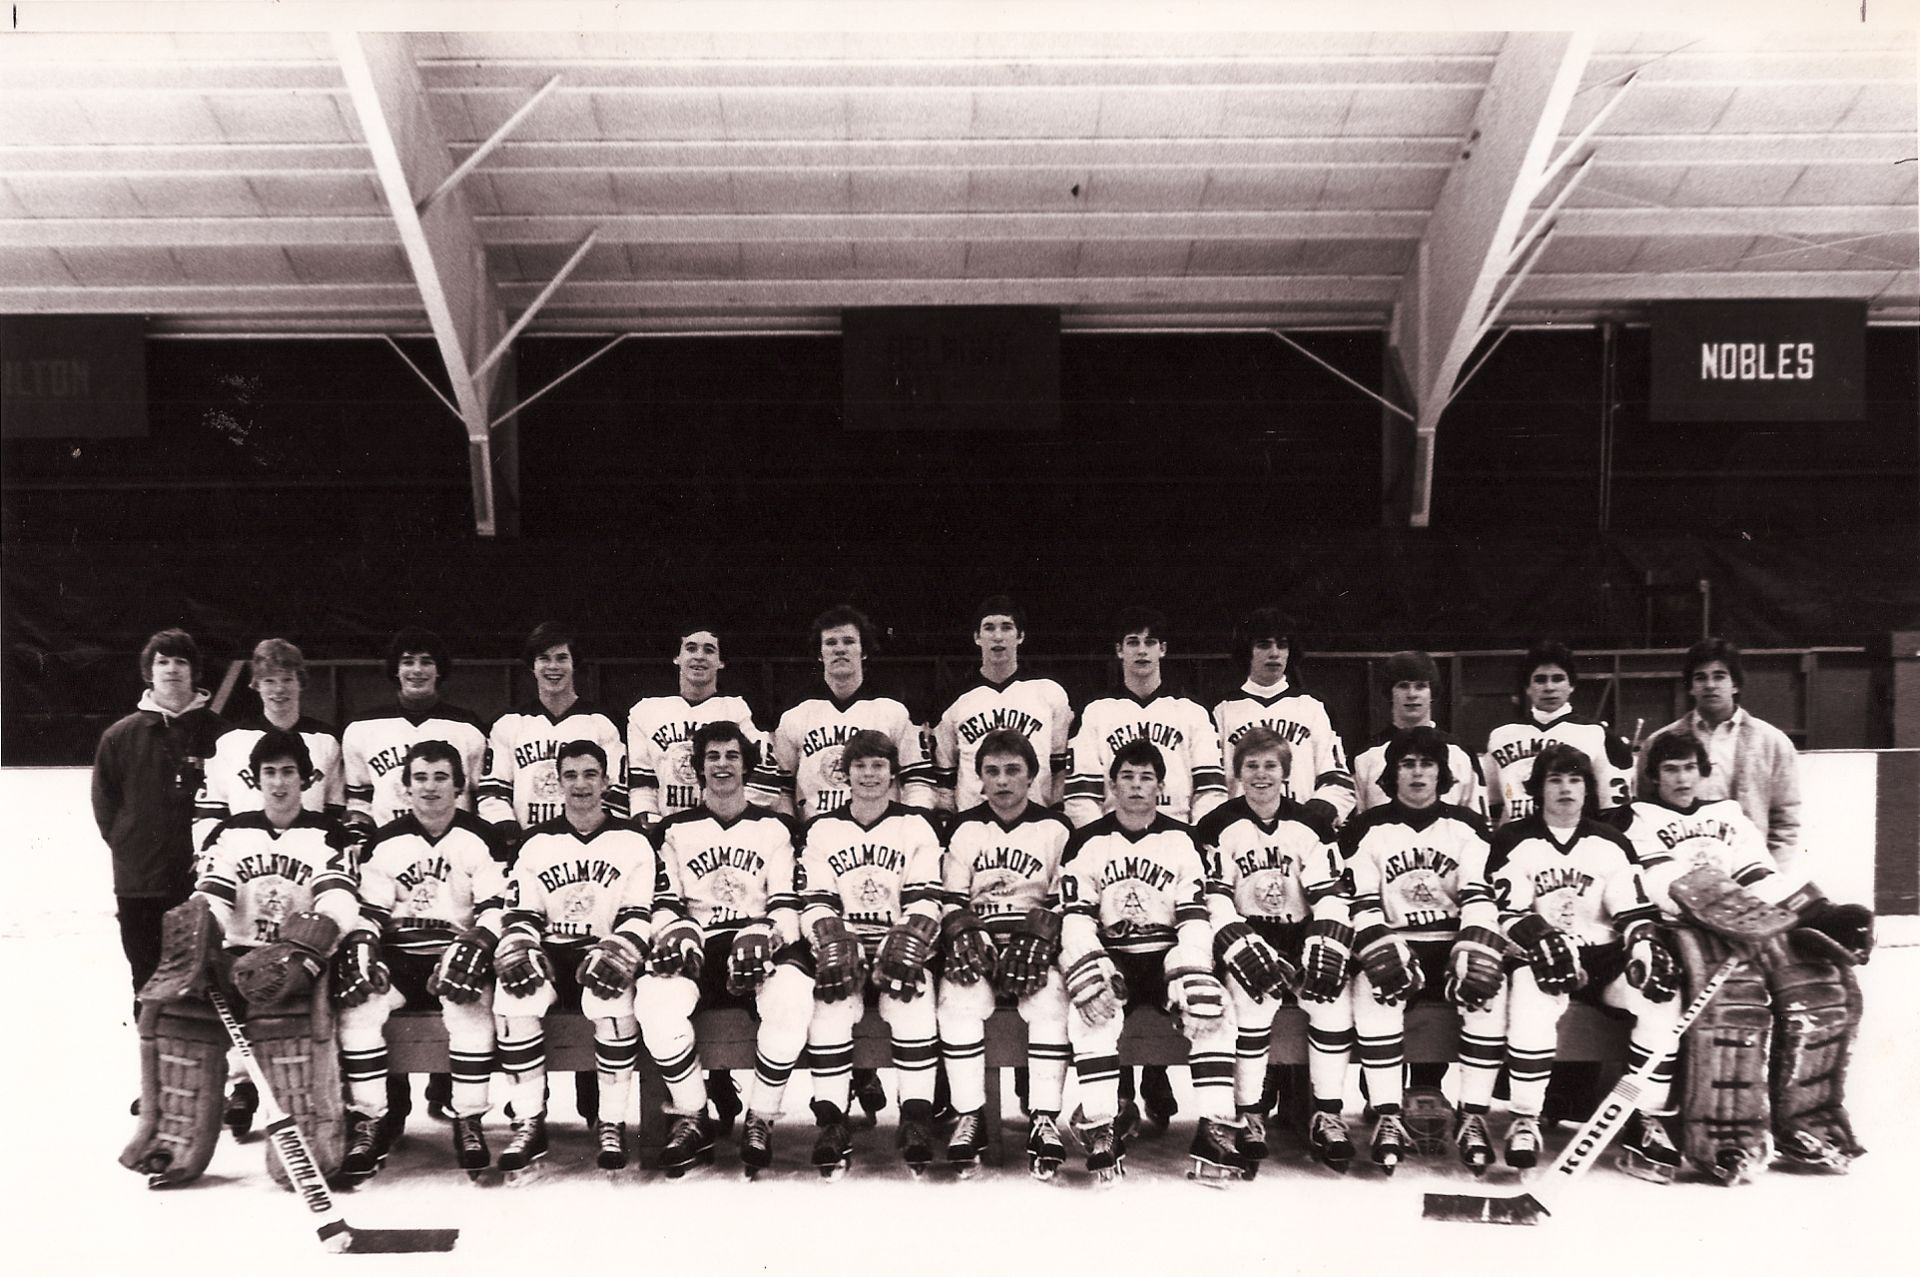 First Row: B. Michals, R. Walsh, P. Derba, J. Leavitt, M. Fusco, G.Klapes (capt), M. Morrison, P. Sullivan, K. Simon, G. Scott, T. Foster Second Row: Coach K. Martin, S. Fusco, F. Matera, J. Moulton, R. Gallagher, P. Carrol, M. Coakley, D. Landau, C. Simon, B. McLaughlin, J. Cannistraro, M. Kolligian (manager)